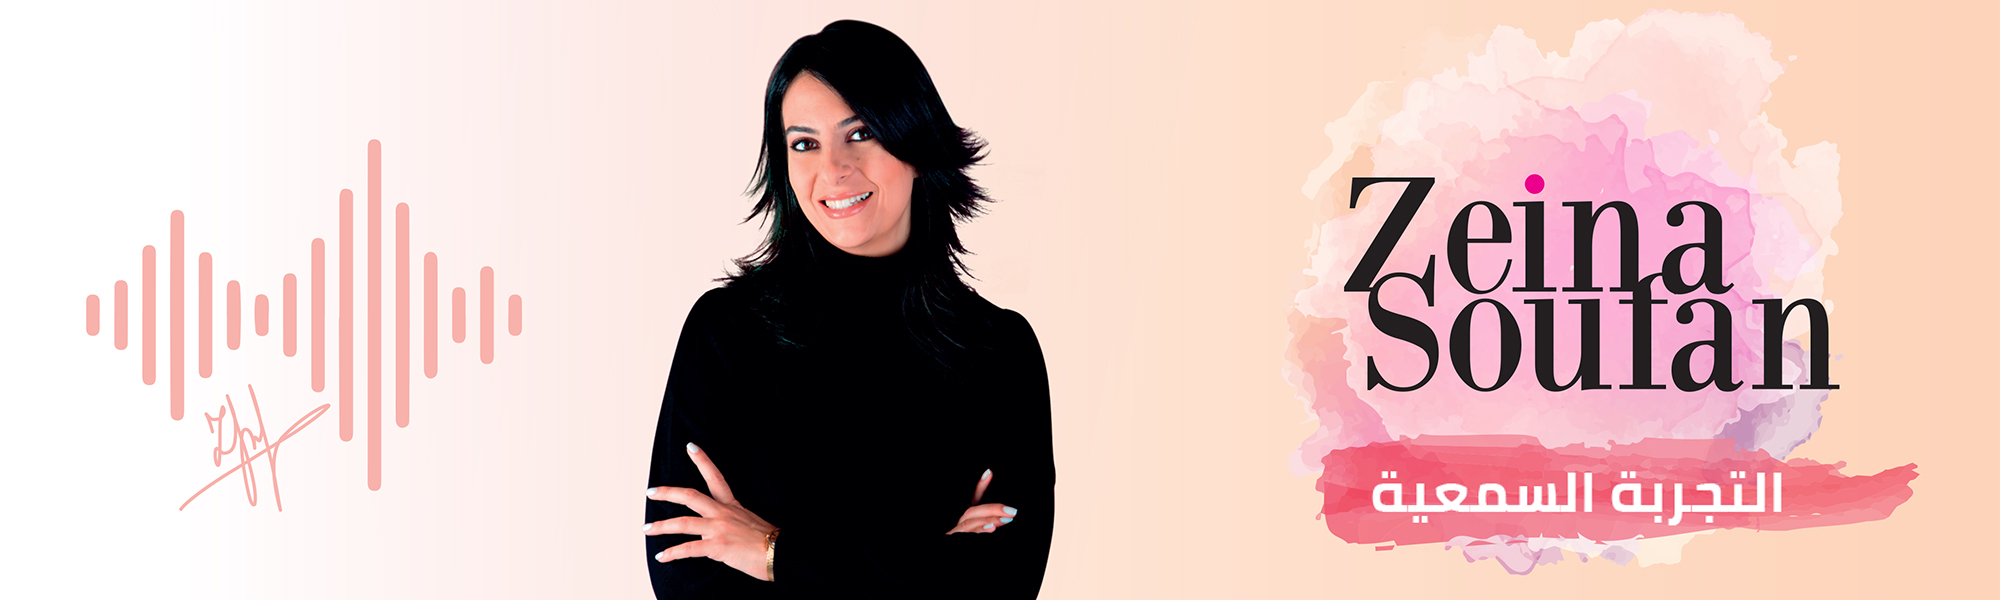 Zeina Soufan - Podcast Banner